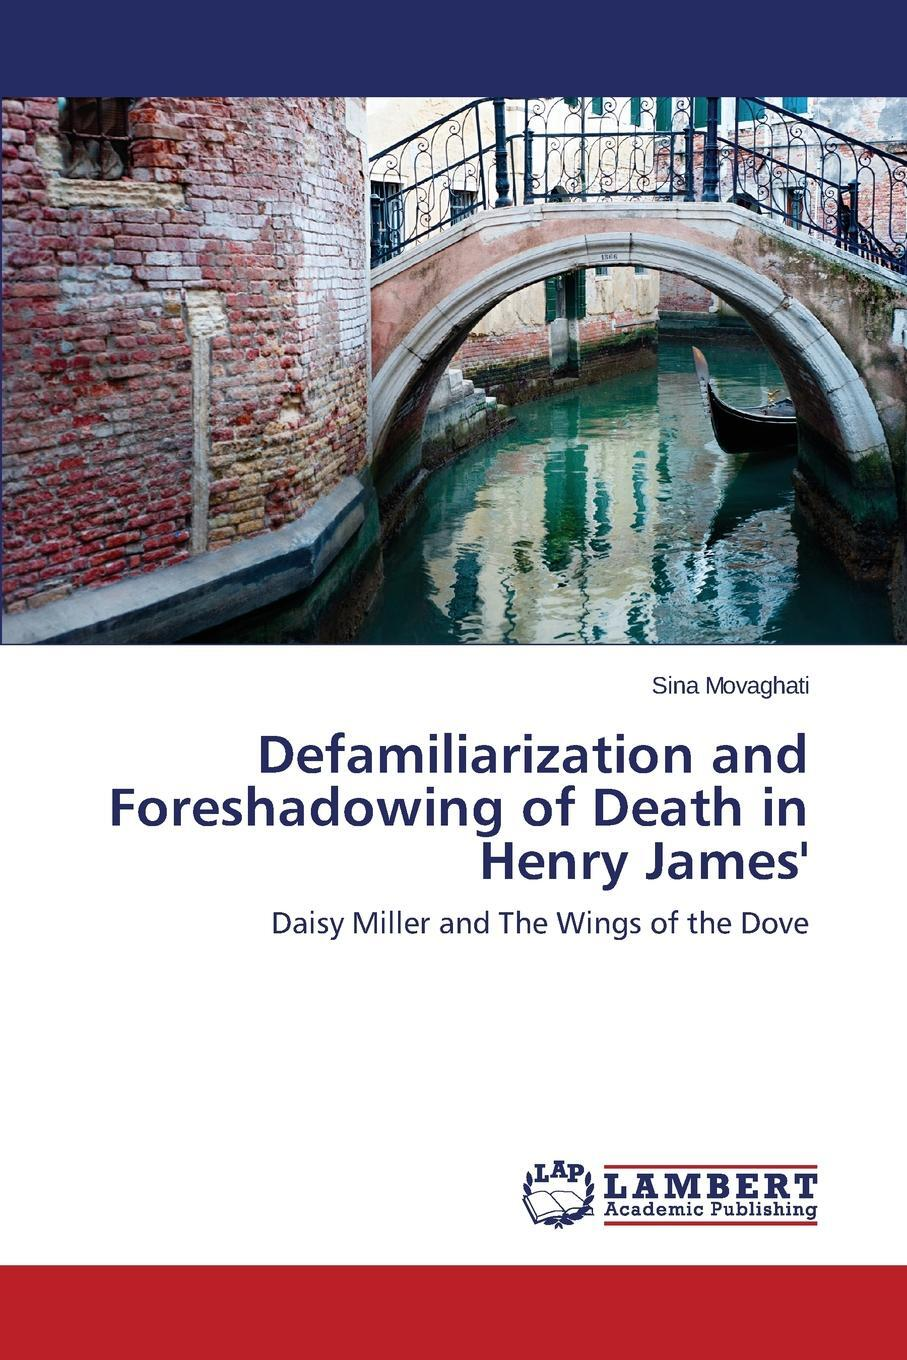 Defamiliarization and Foreshadowing of Death in Henry James`. Movaghati Sina